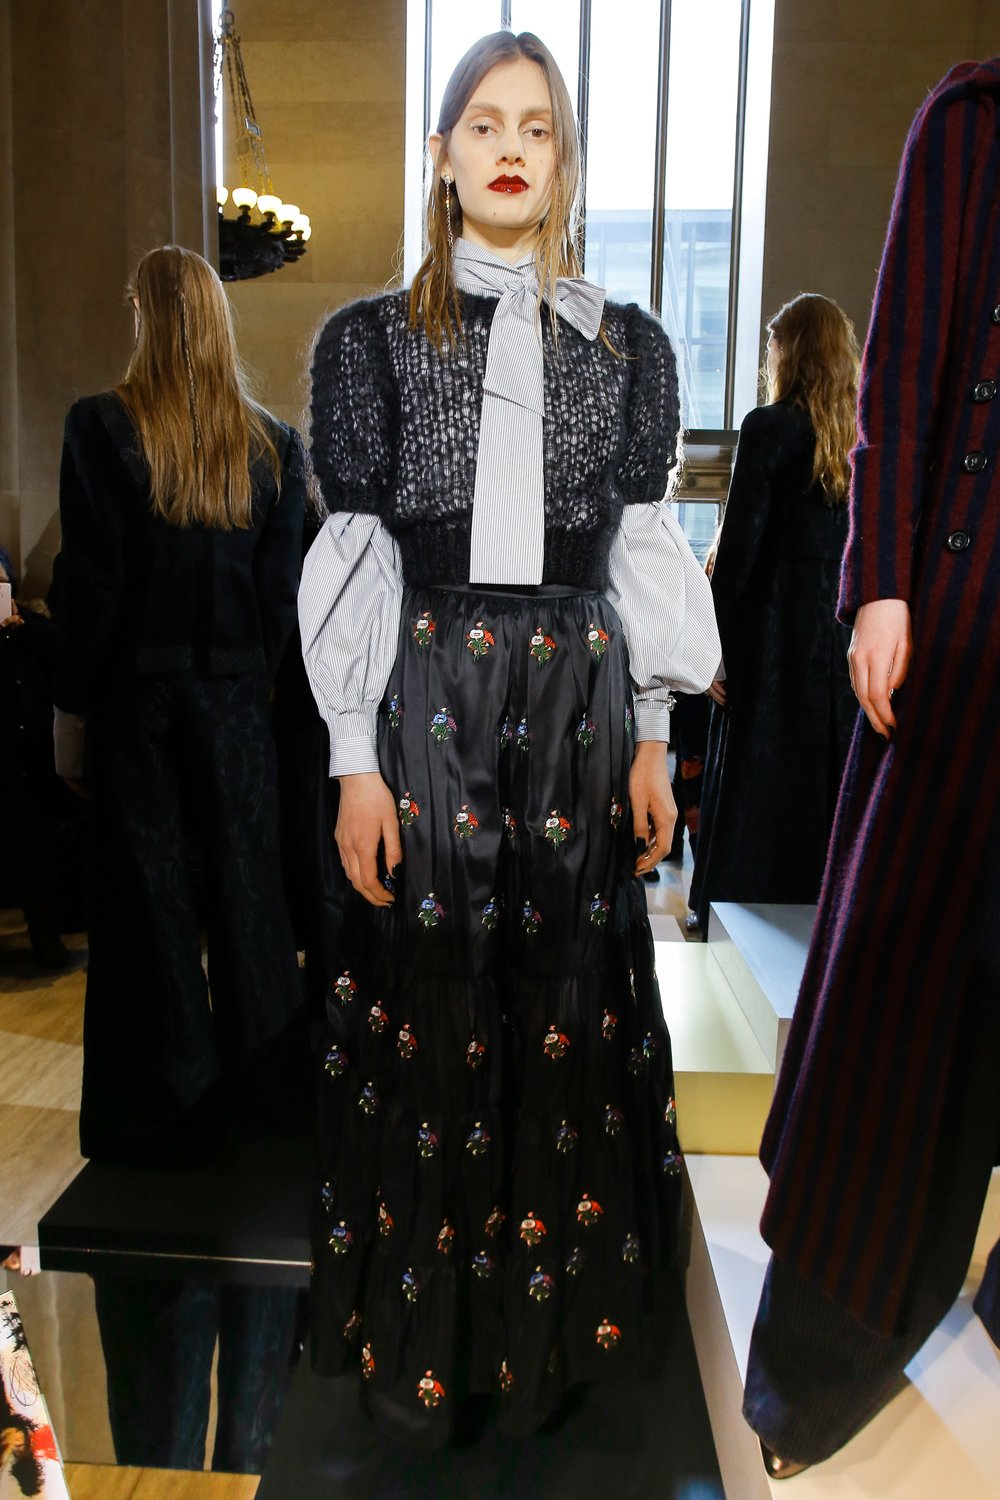 Jill Stuart Fashion Presentation Fall Winter 2017 Esther Santer Fashion Blog Louboutins & Love NYC Street Style Blogger Outfit OOTD Trendy Runway Run Way NYFW Leather Lace Boots Velvet Black Colors Colorful Pinstripes Skirt Coat Jacket Sunglasses Cool.jpg